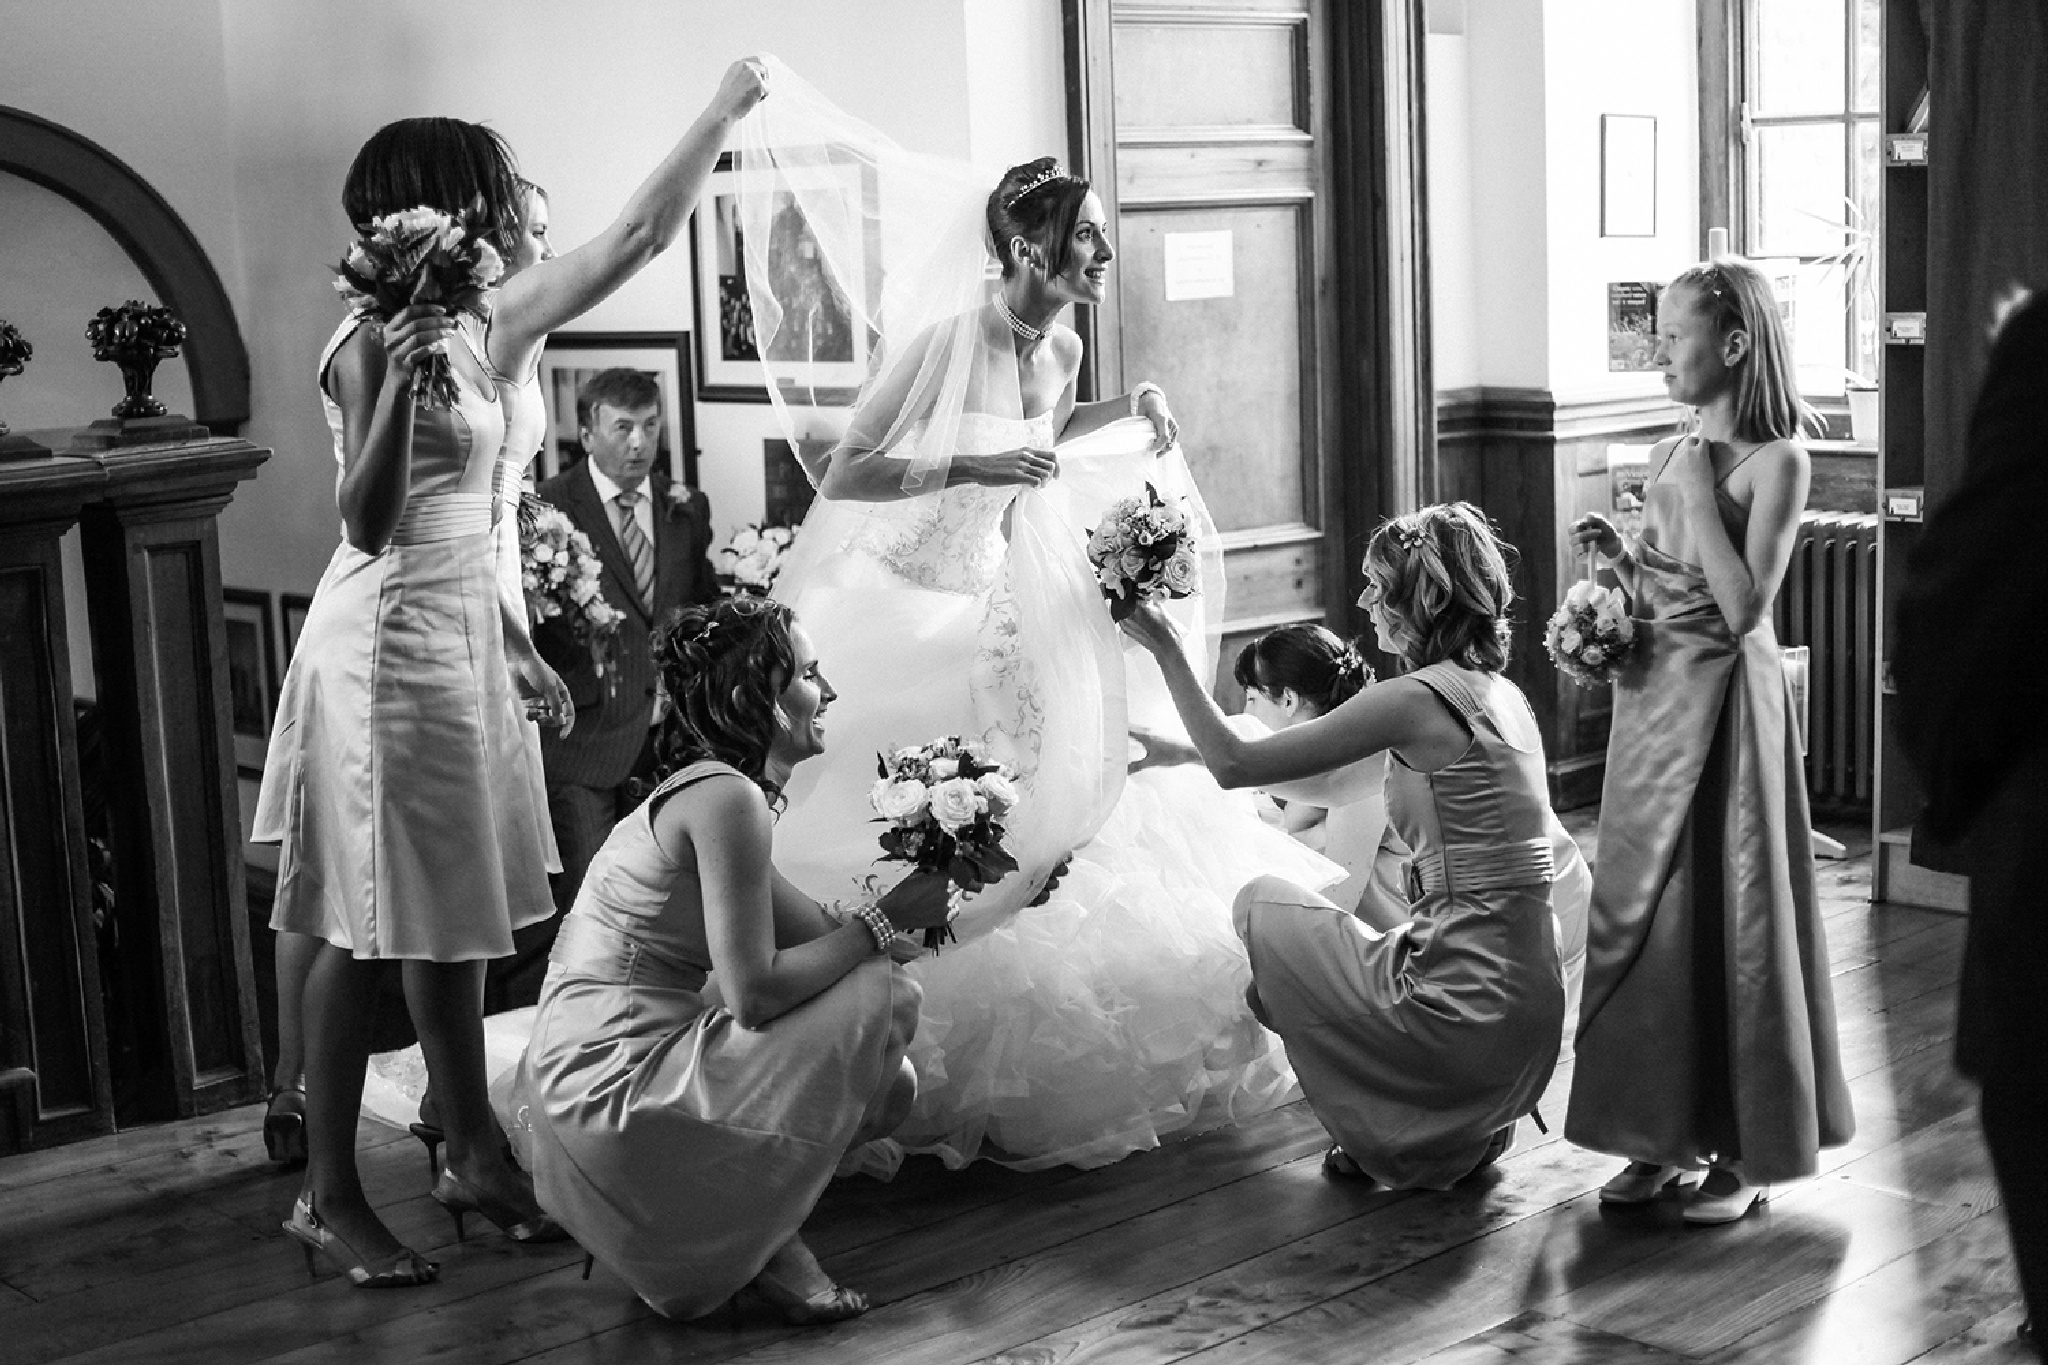 Final bride's preparations by Paul Fletcher